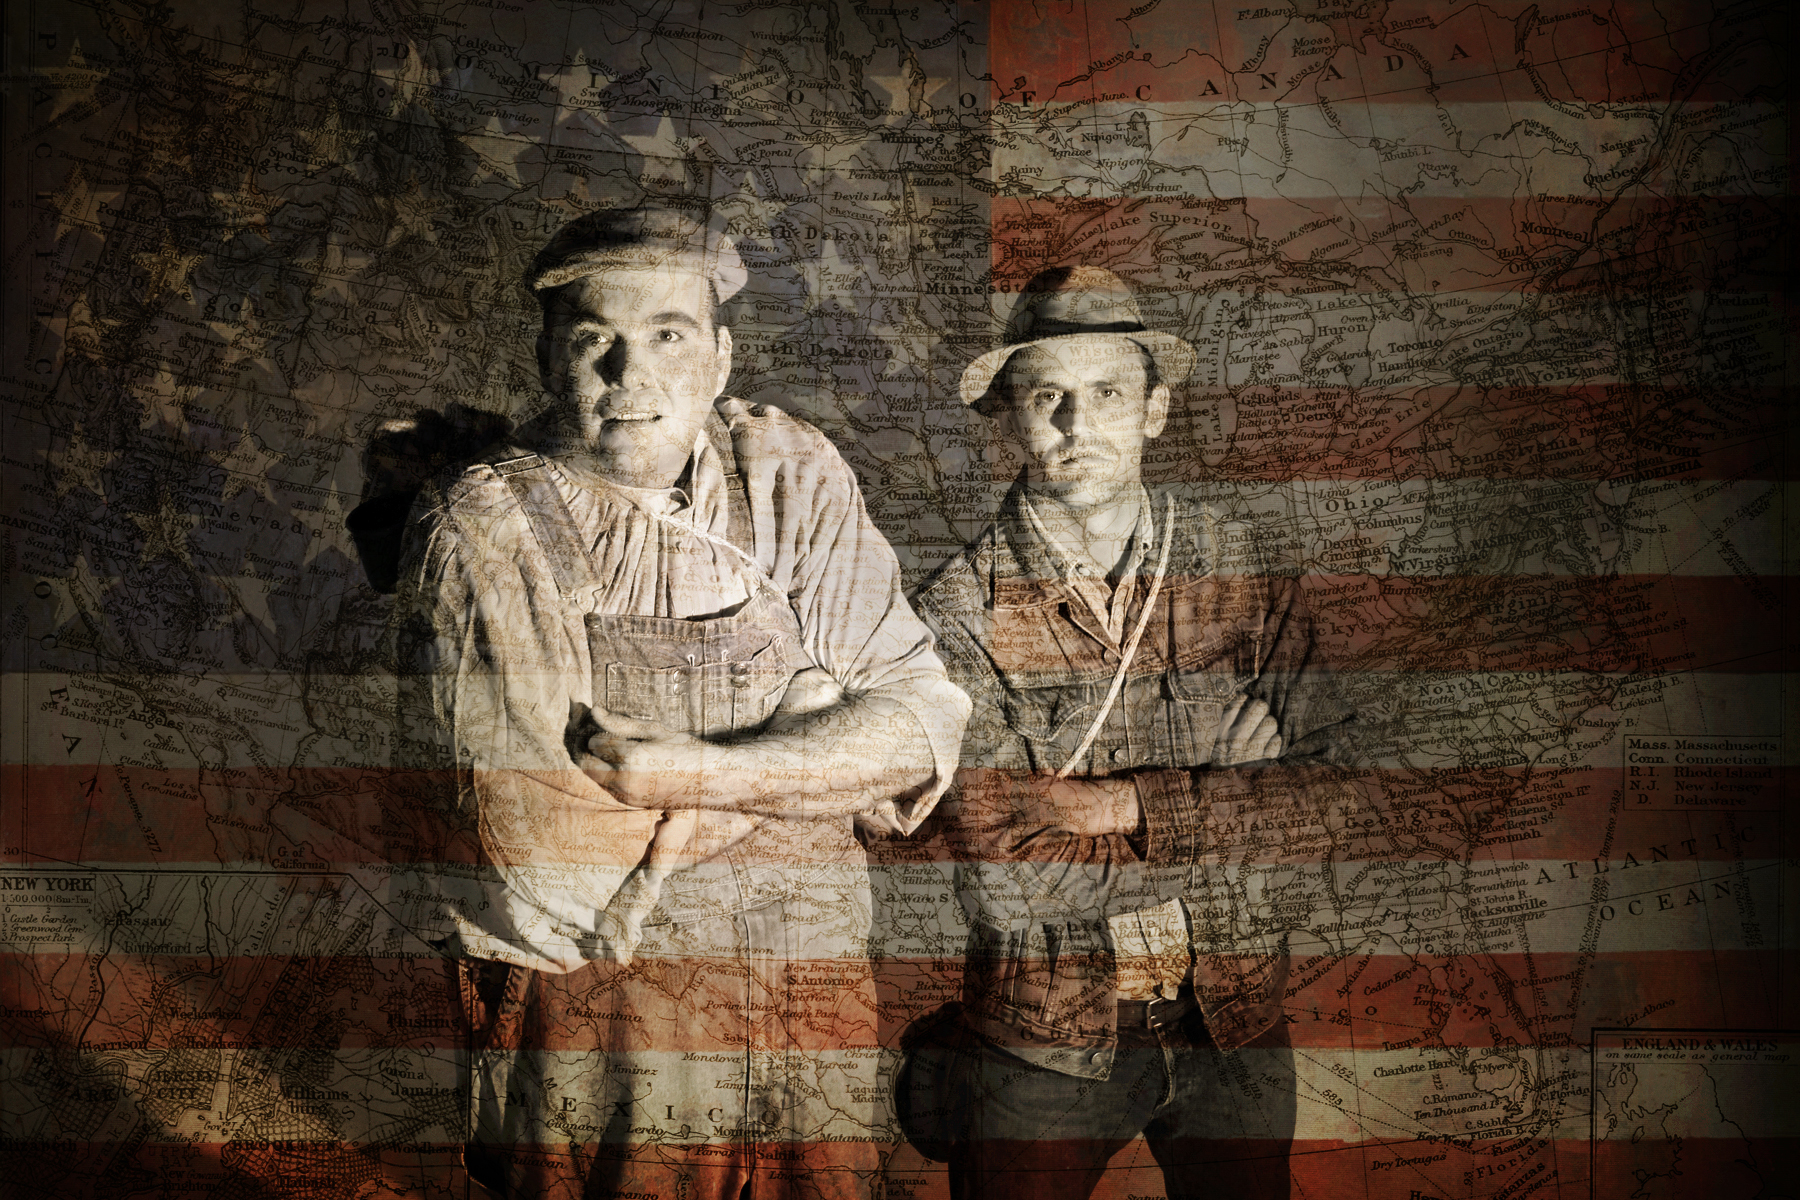 Of Mice and Men - Paulo de Sousa and Ronnie Gunter - America